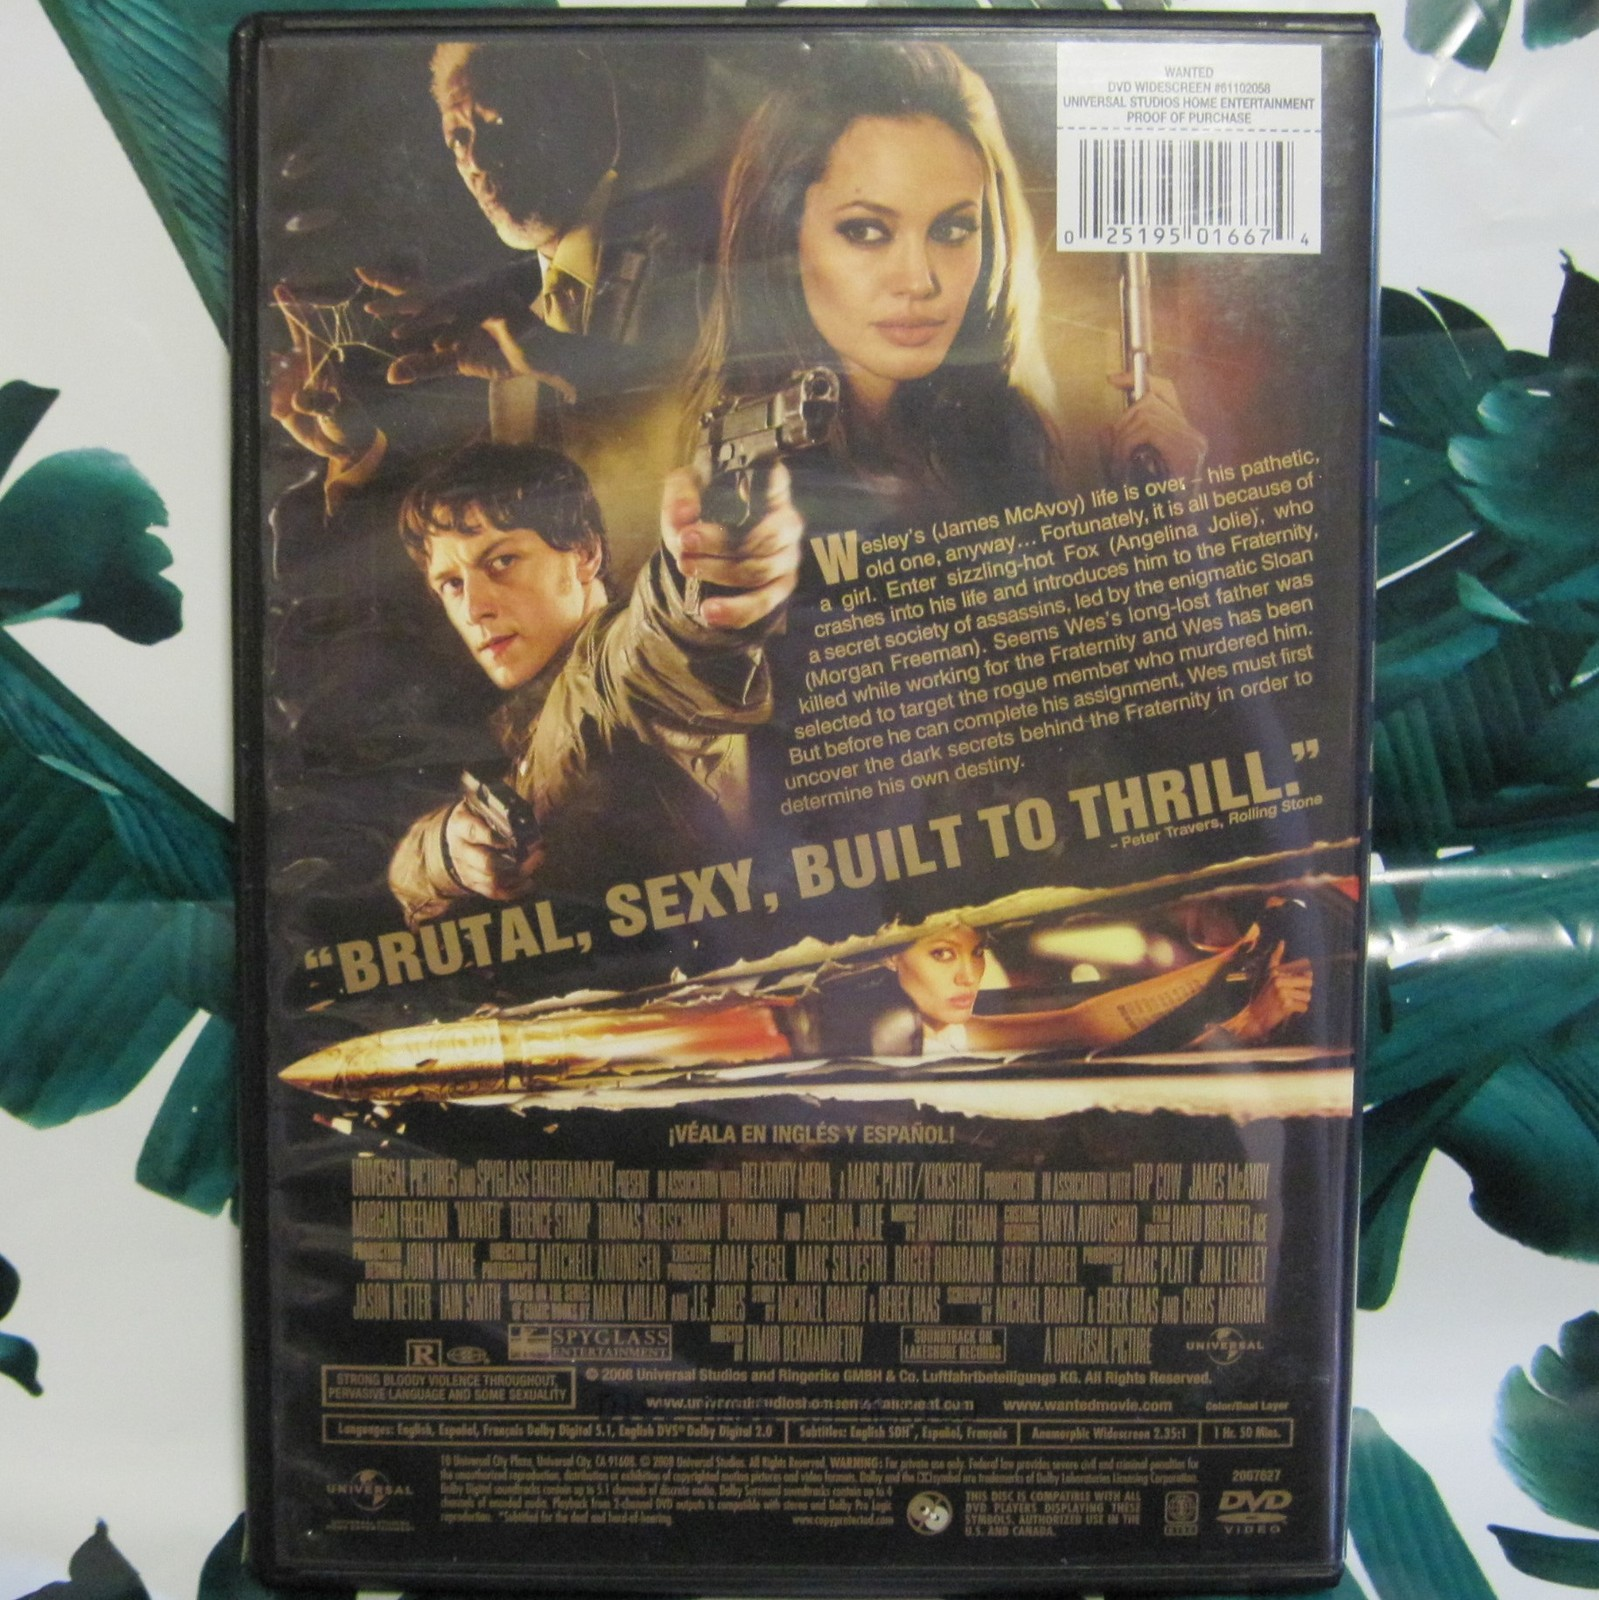 DVD Wanted James McAvoy Morgan Freemen Angelina Jolie Widescreen image 2